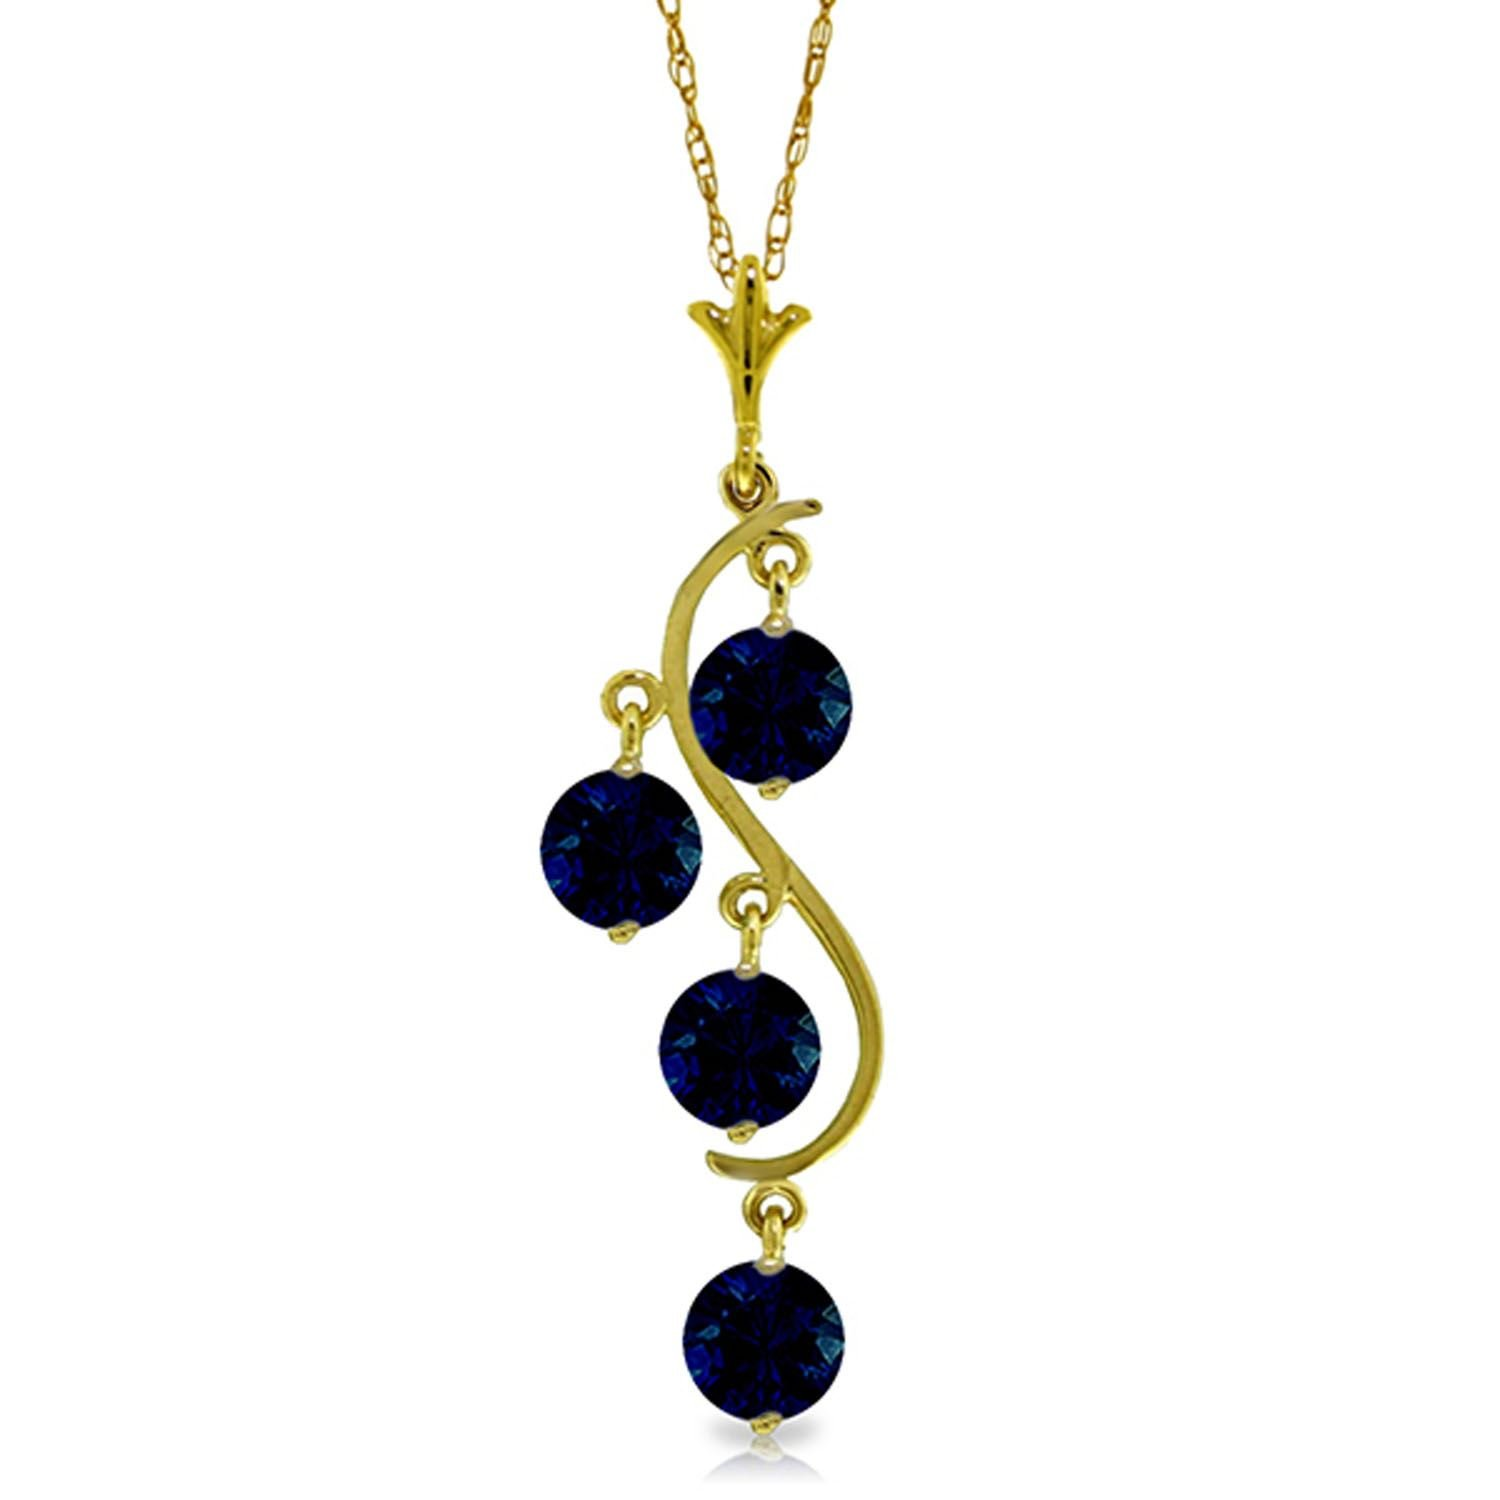 ALARRI 2 CTW 14K Solid Gold Don't Deny Love Sapphire Necklace with 18 Inch Chain Length